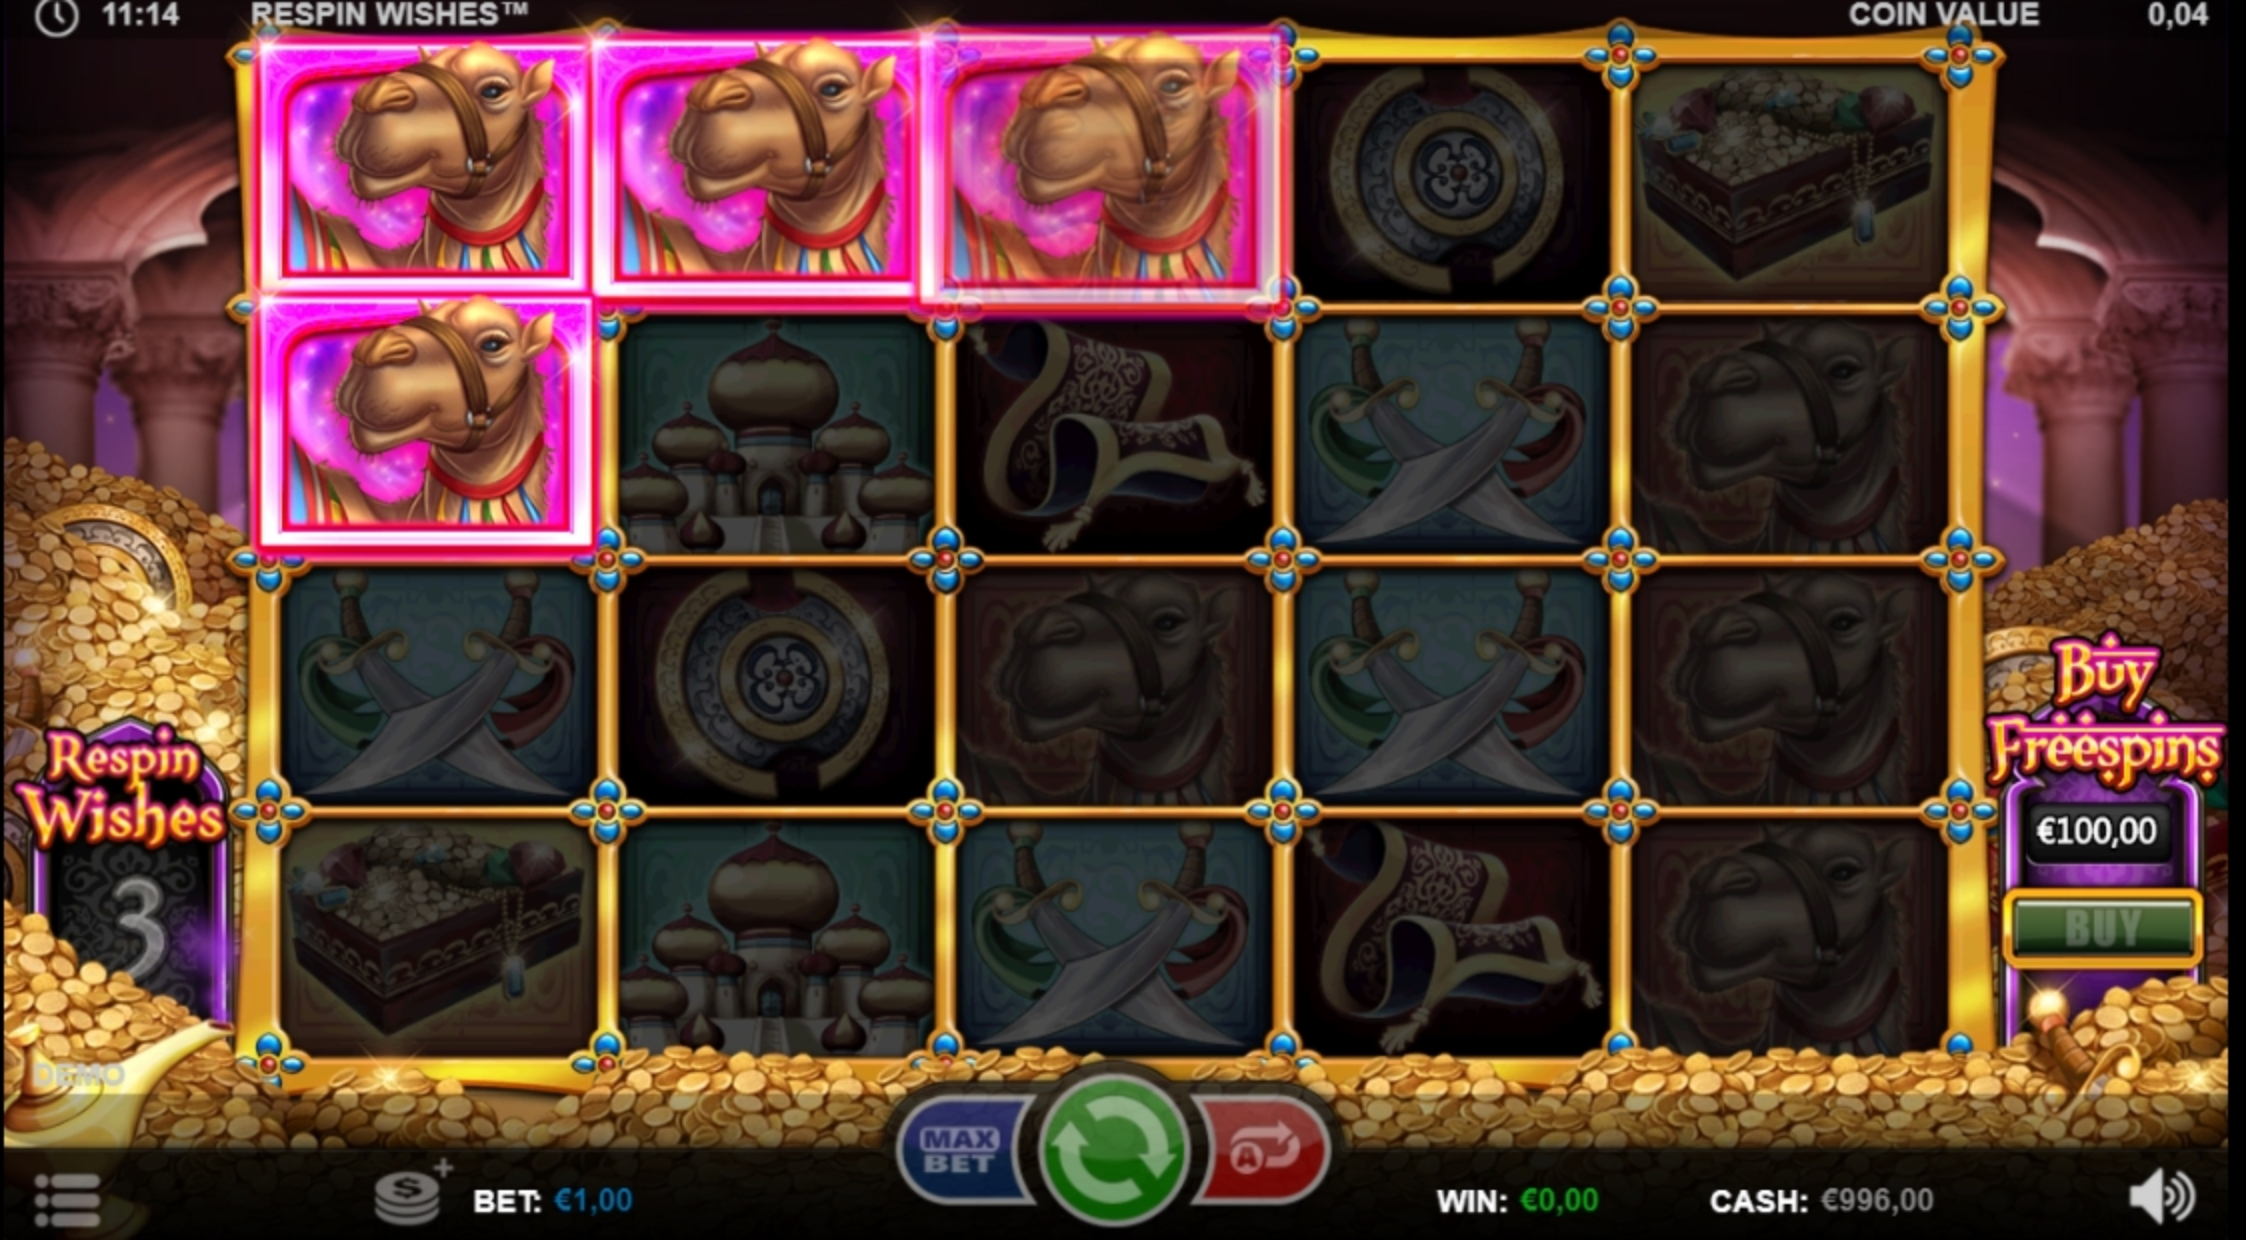 Win Money in Respin Wishes Free Slot Game by Games Inc